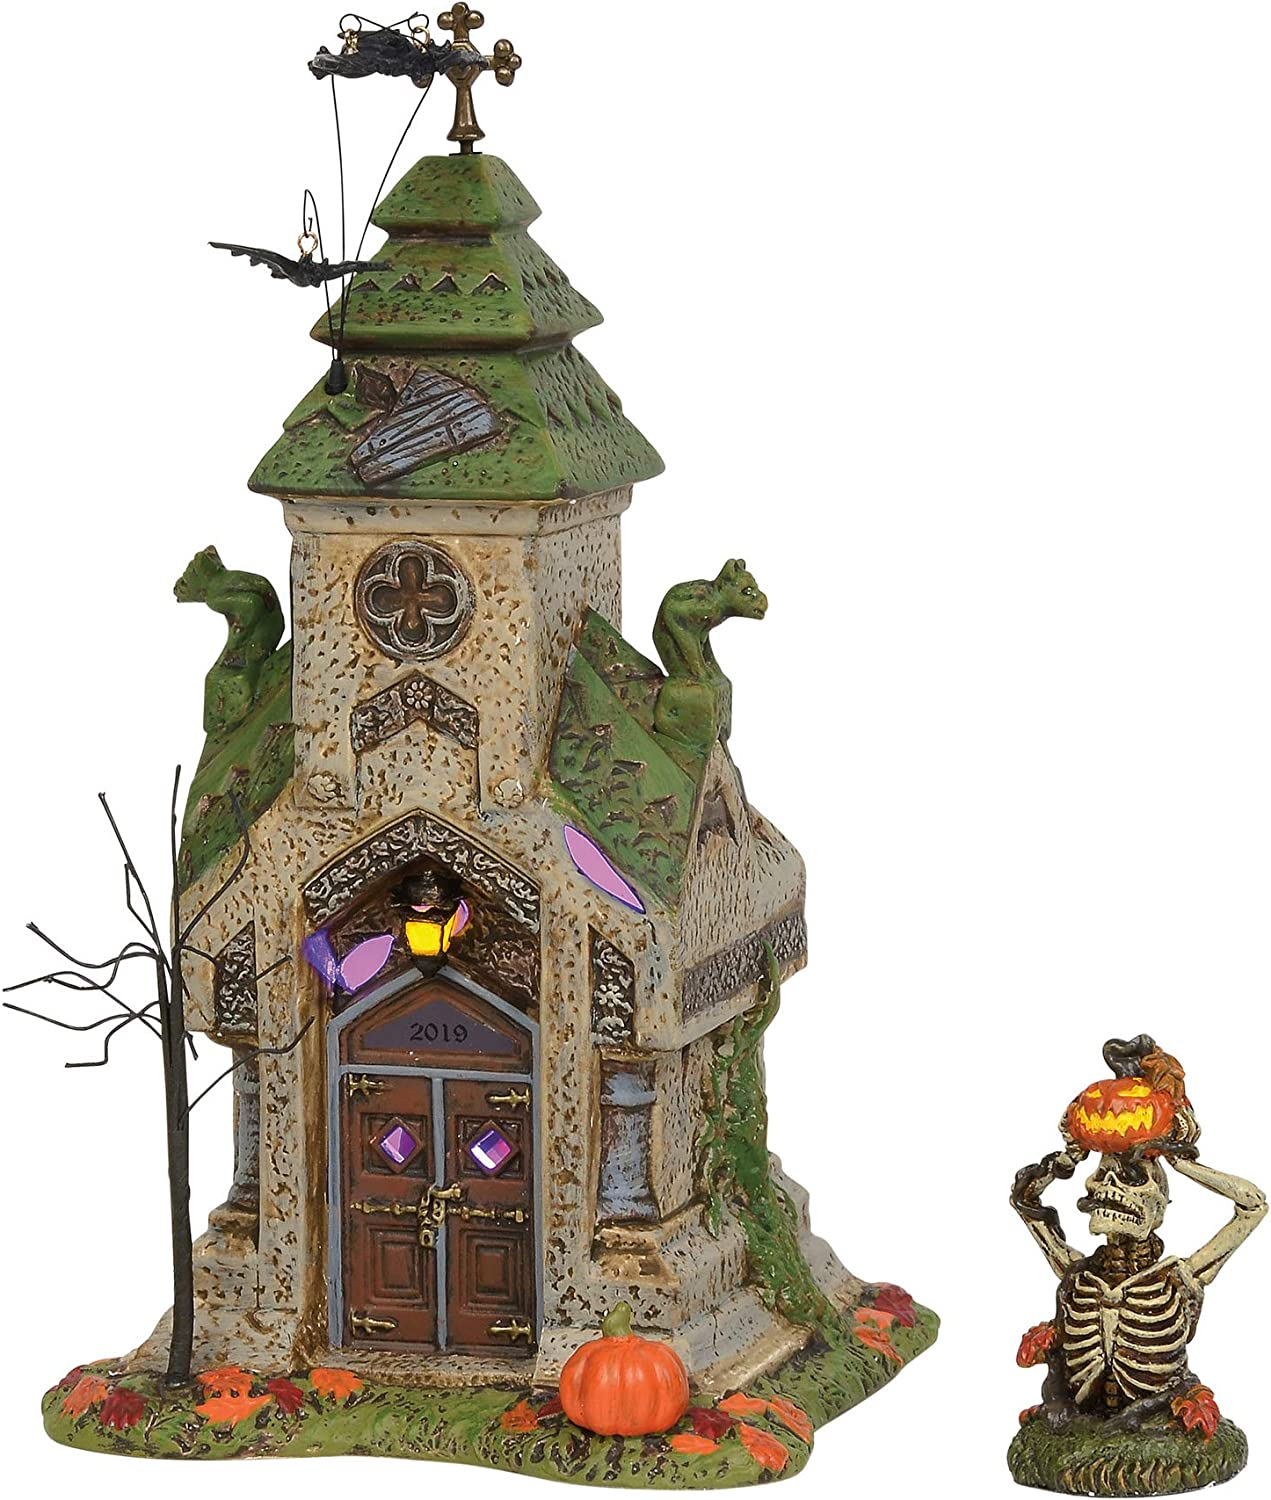 Department 56 Halloween Accessories for Village Collections Rest in Peace 2019 Crypt and Skeleton Lit Figurine Set, 7.13 Inch, Multicolor